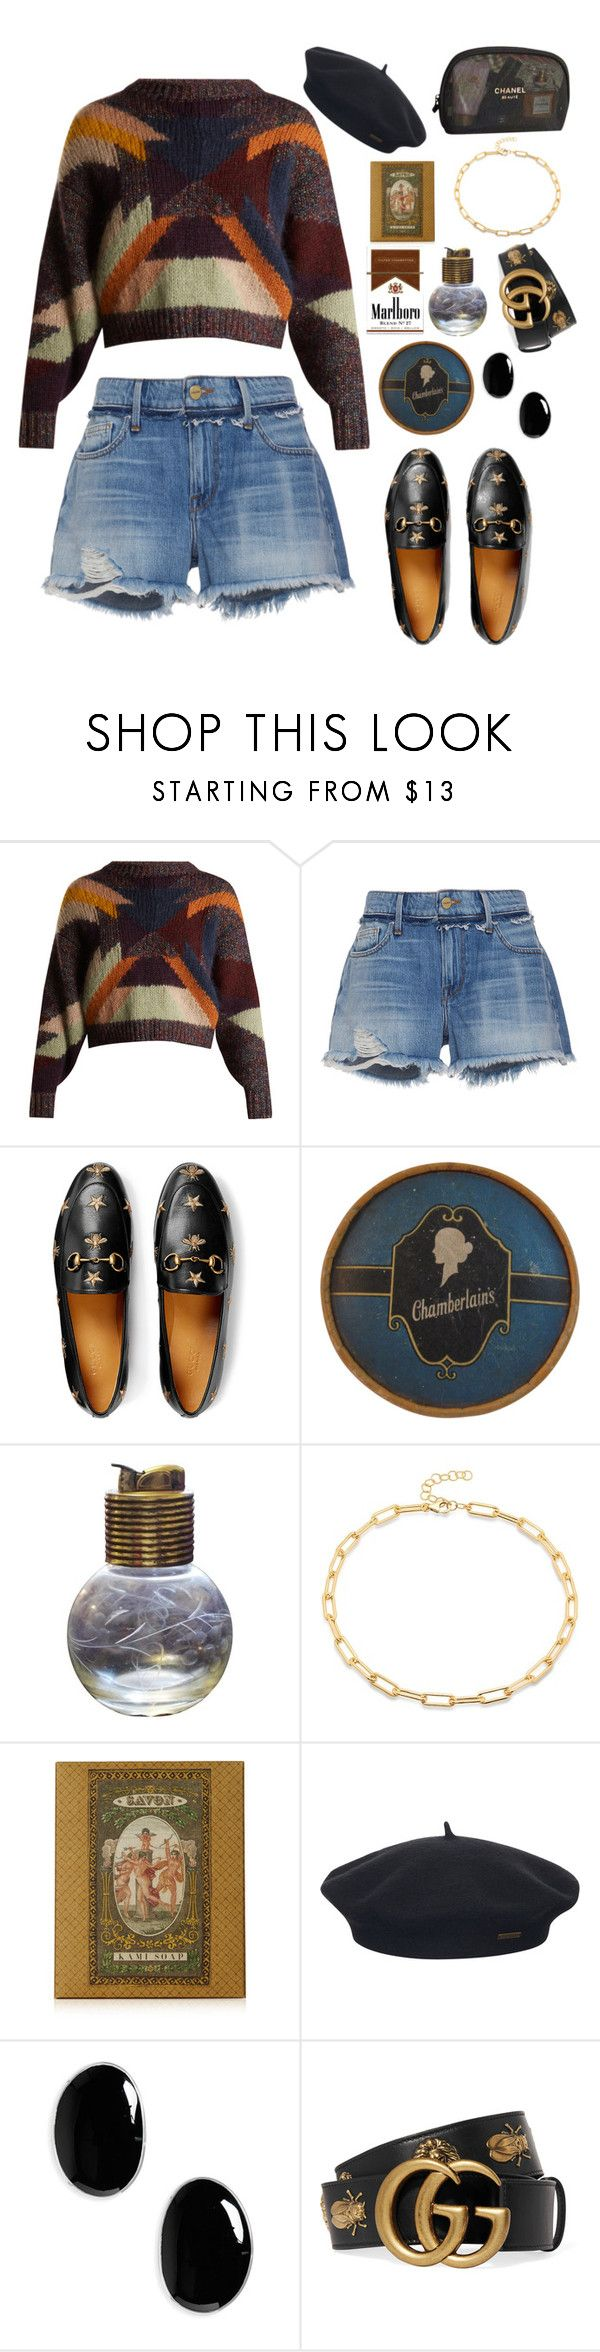 """""""I'm using white lighters to see, what's in front of me"""" by littlefruit18 ❤ liked on Polyvore featuring Isabel Marant, Frame, Gucci, Evans, Briard, Element, Sophie Buhai and Chanel"""